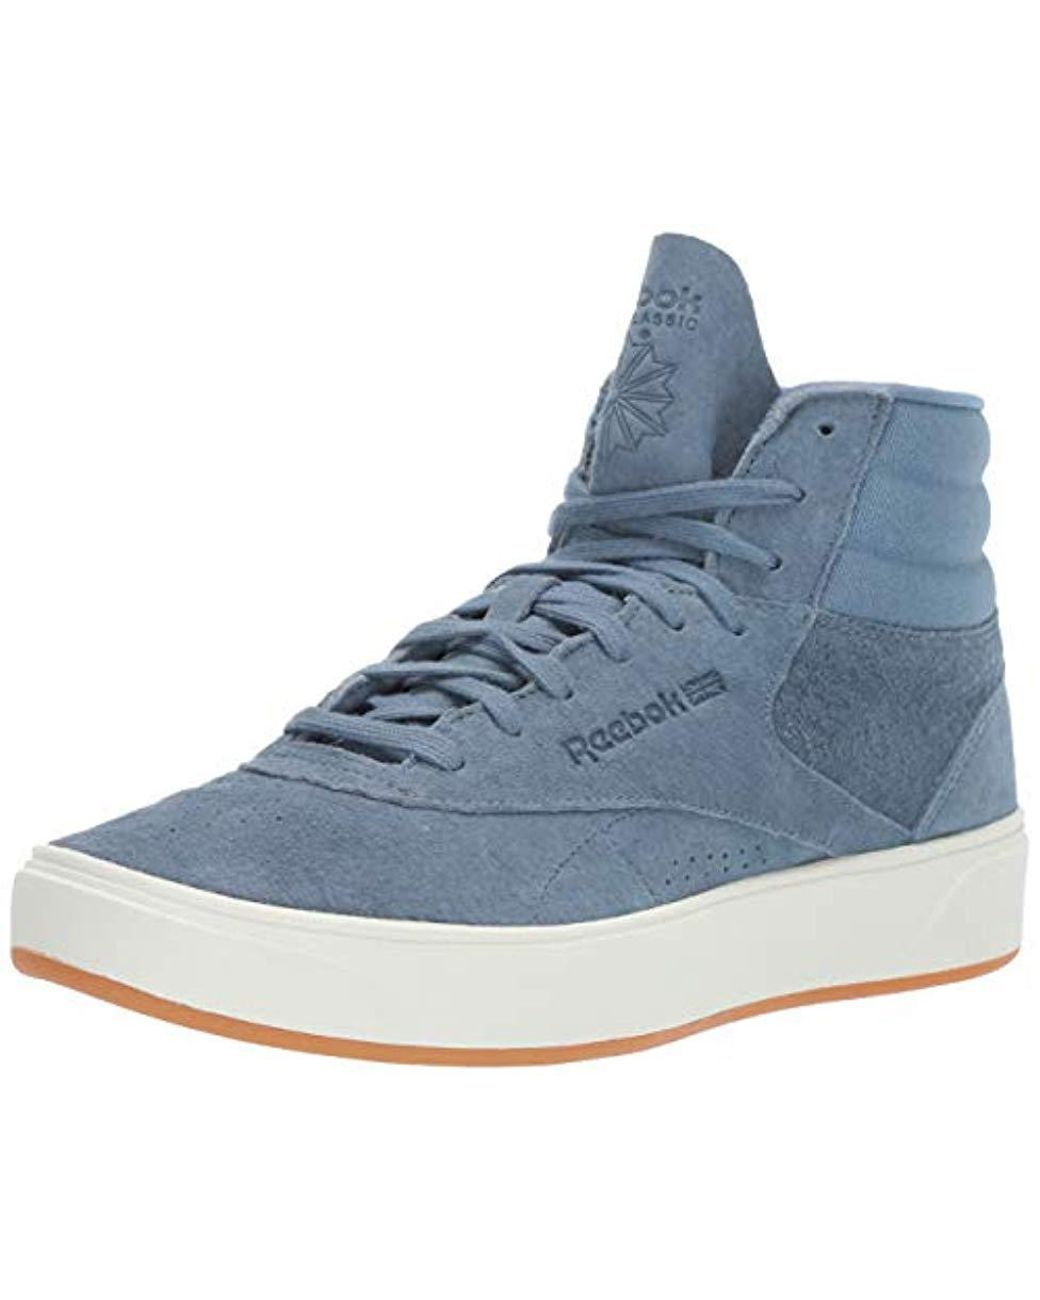 a3b9ae4c7 Reebok Freestyle Hi Nova Sneaker in Blue - Save 2% - Lyst